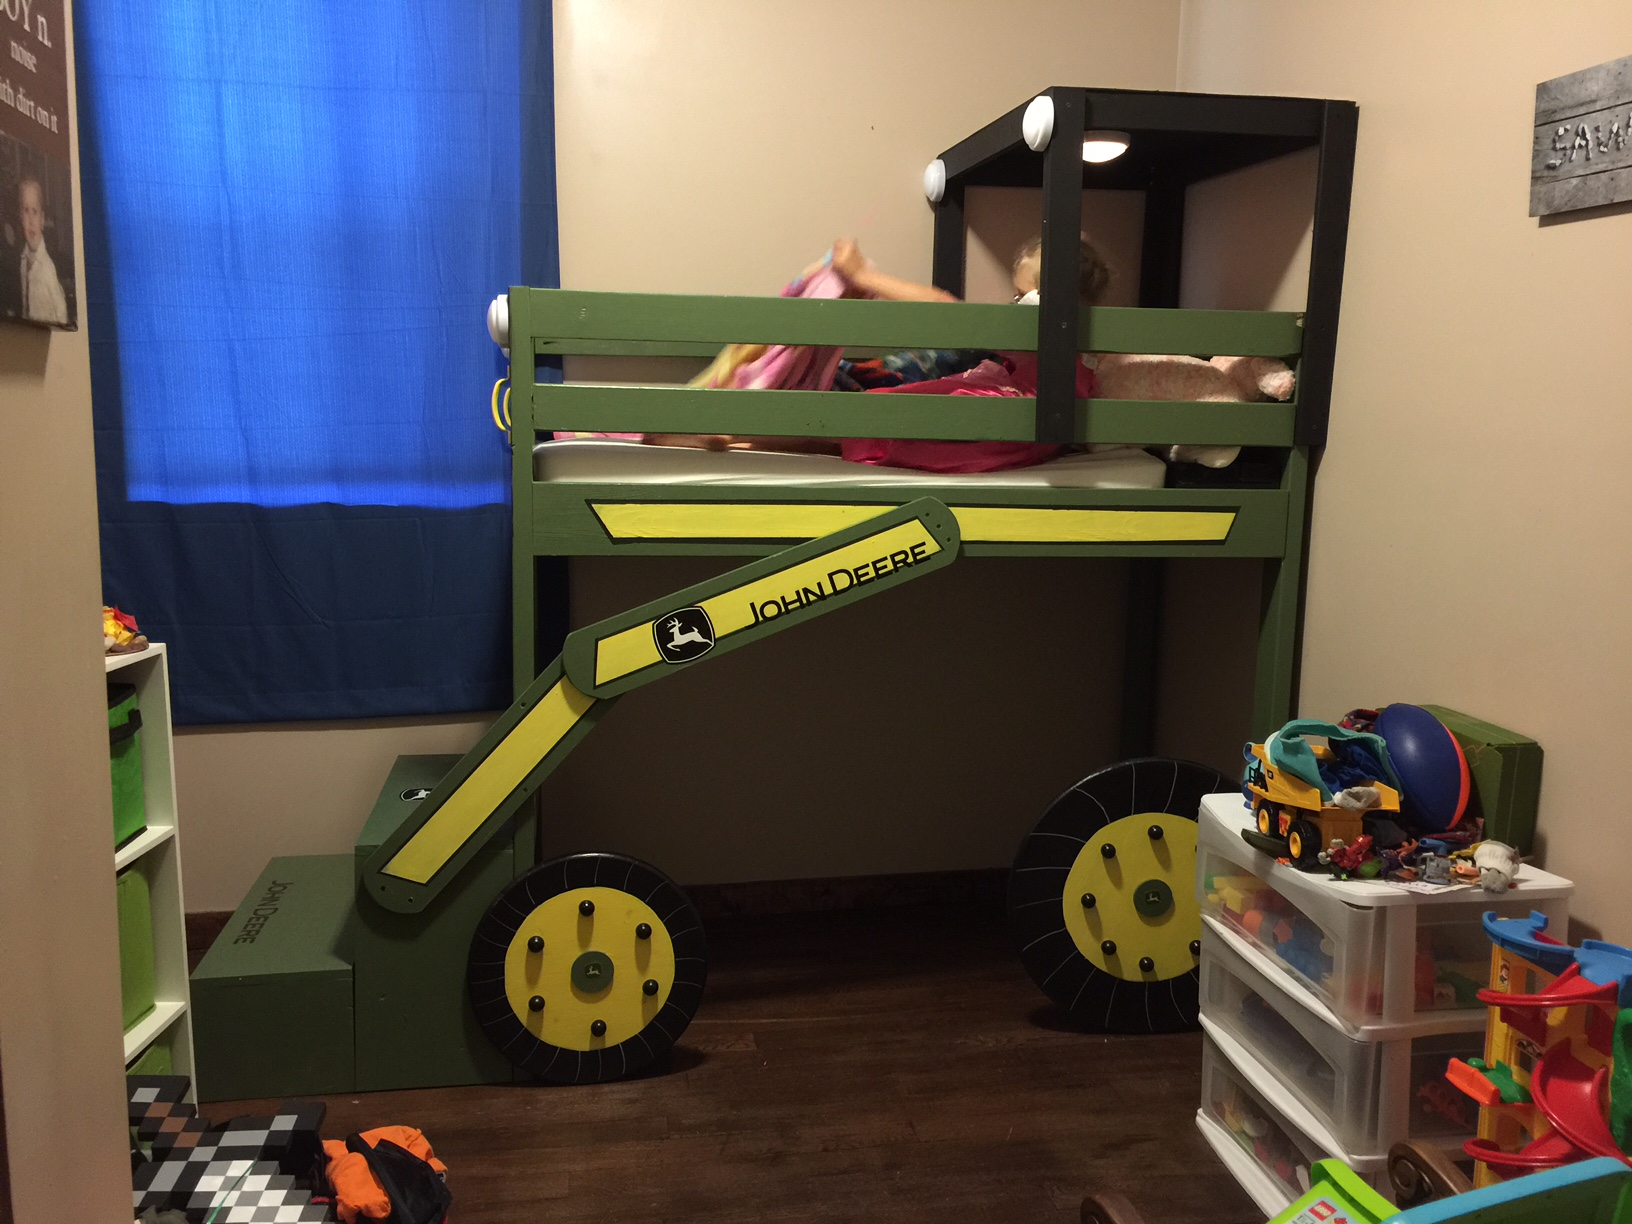 John Deere Bedding | John Deere Bedroom Accessories | John Deere Beds